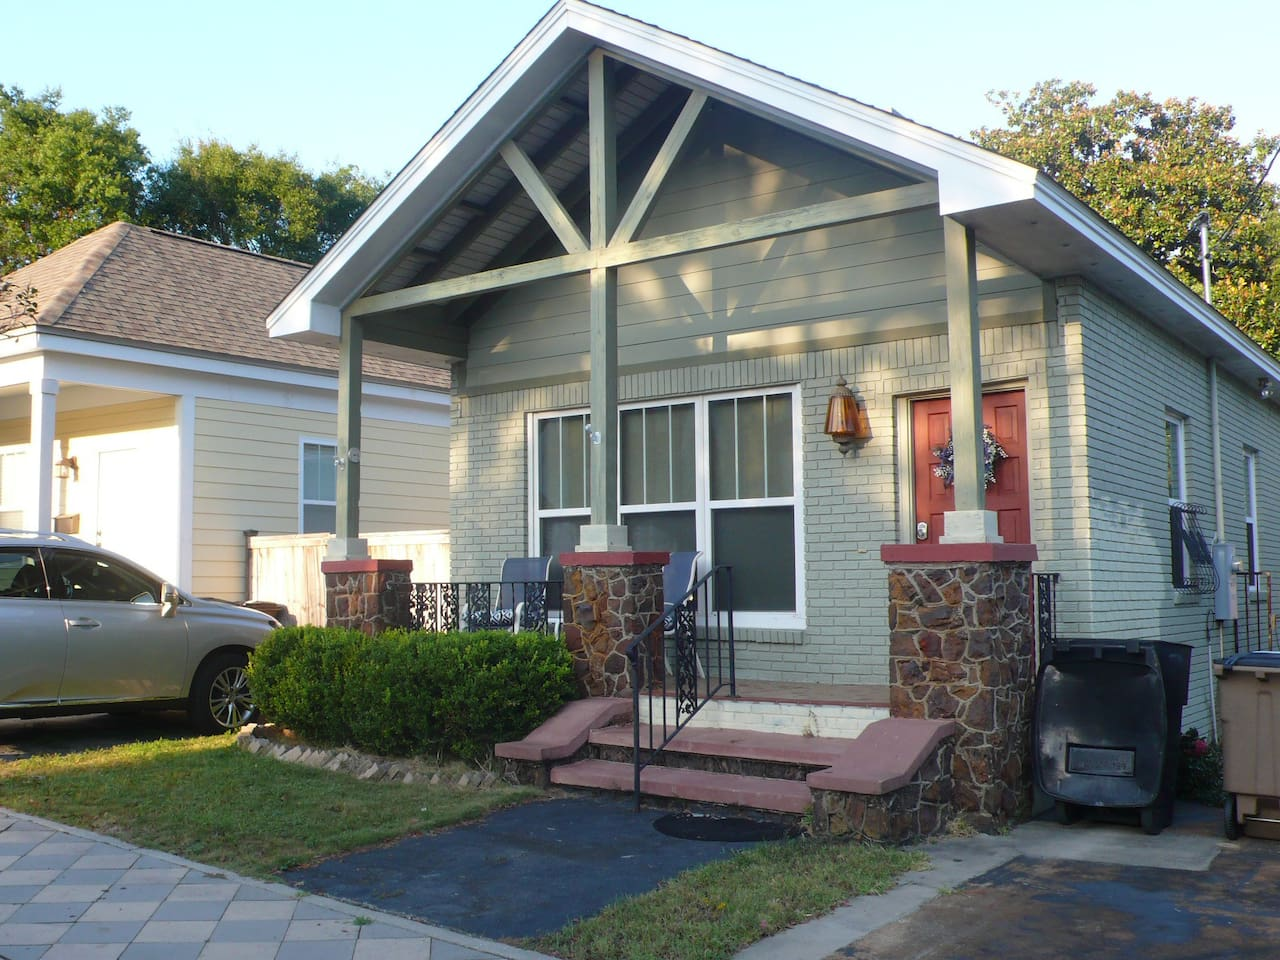 Charming Full Home with 2 Bedrooms\2 Baths